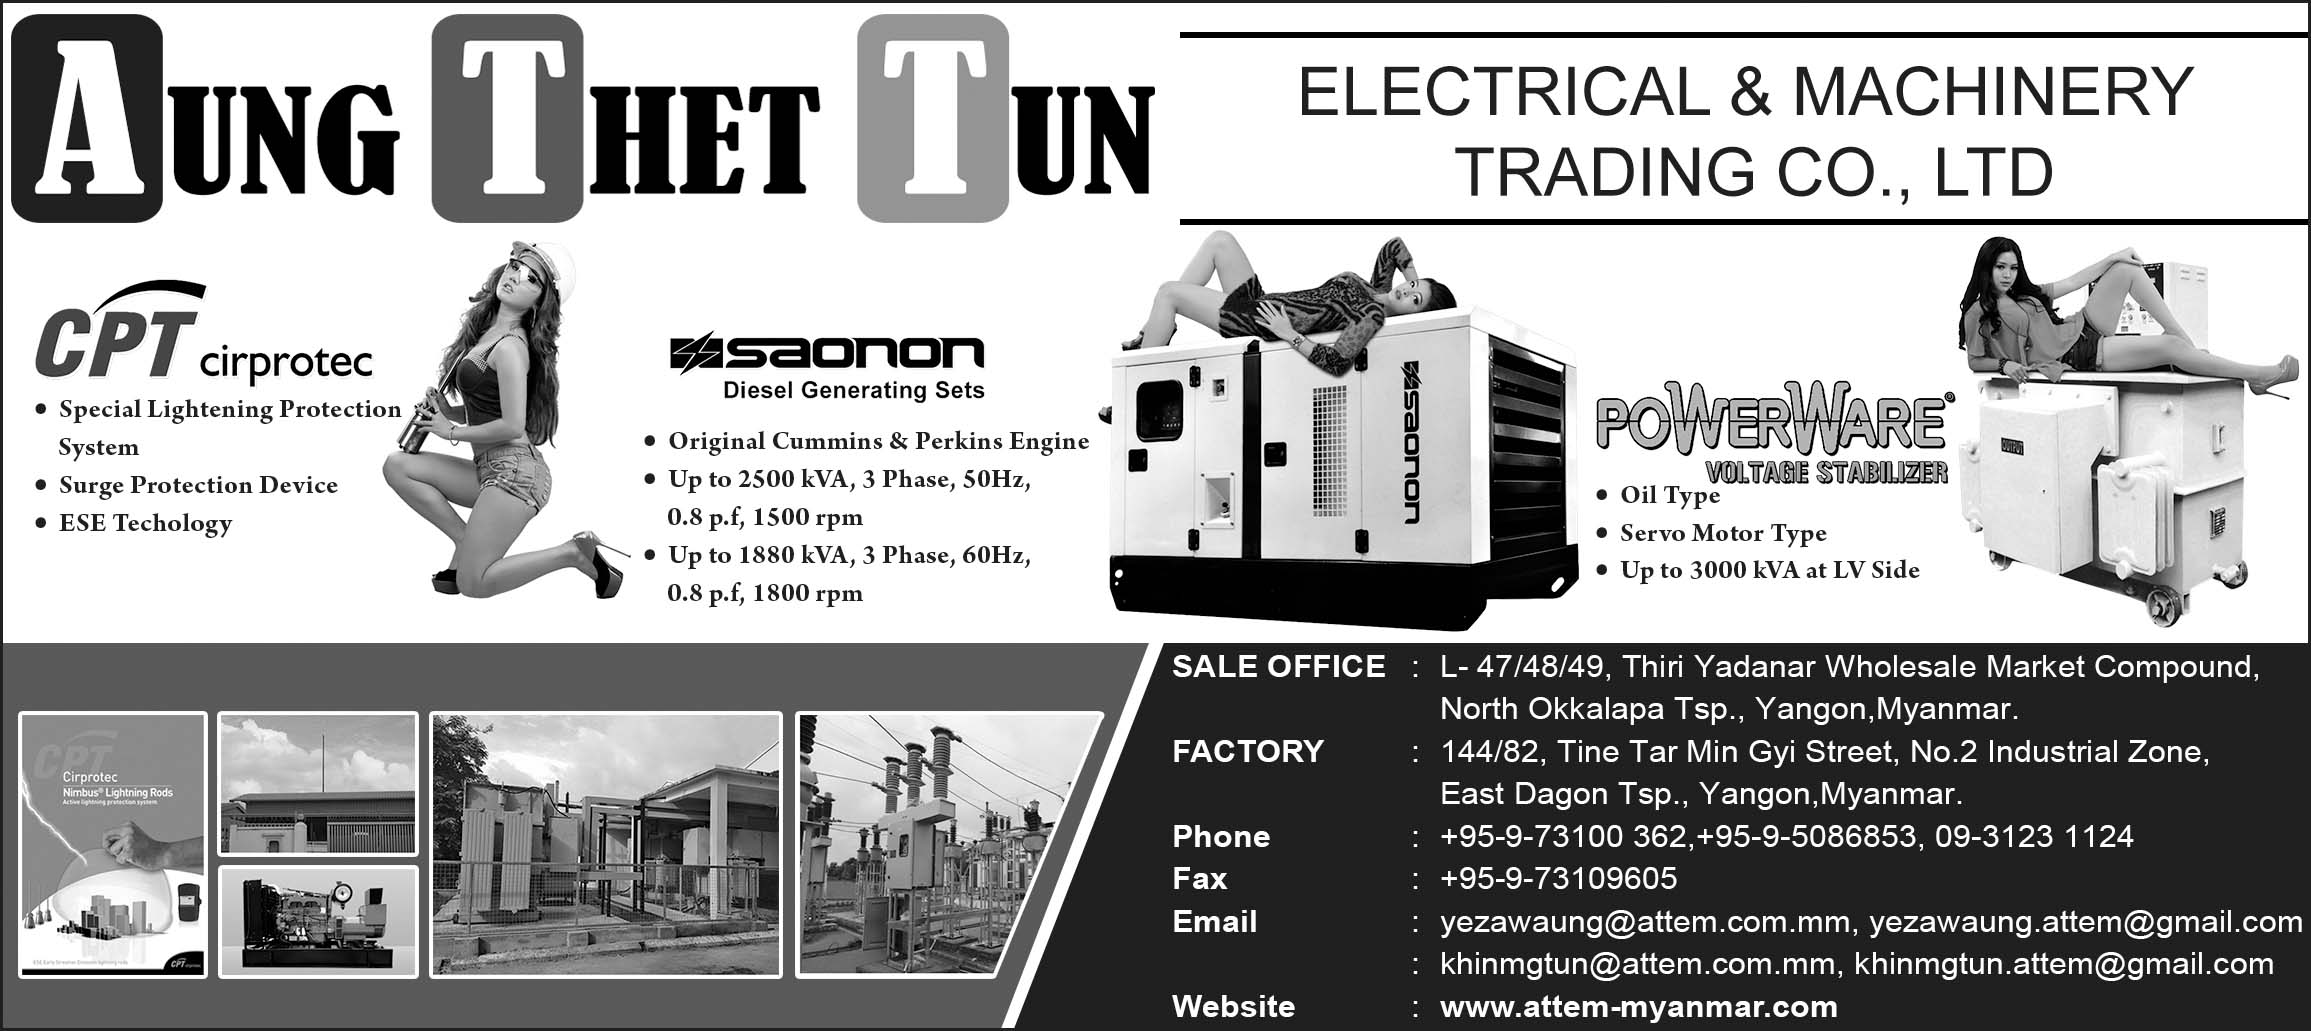 Aung Thet Tun Electrical and Machinery Trading Co., Ltd.